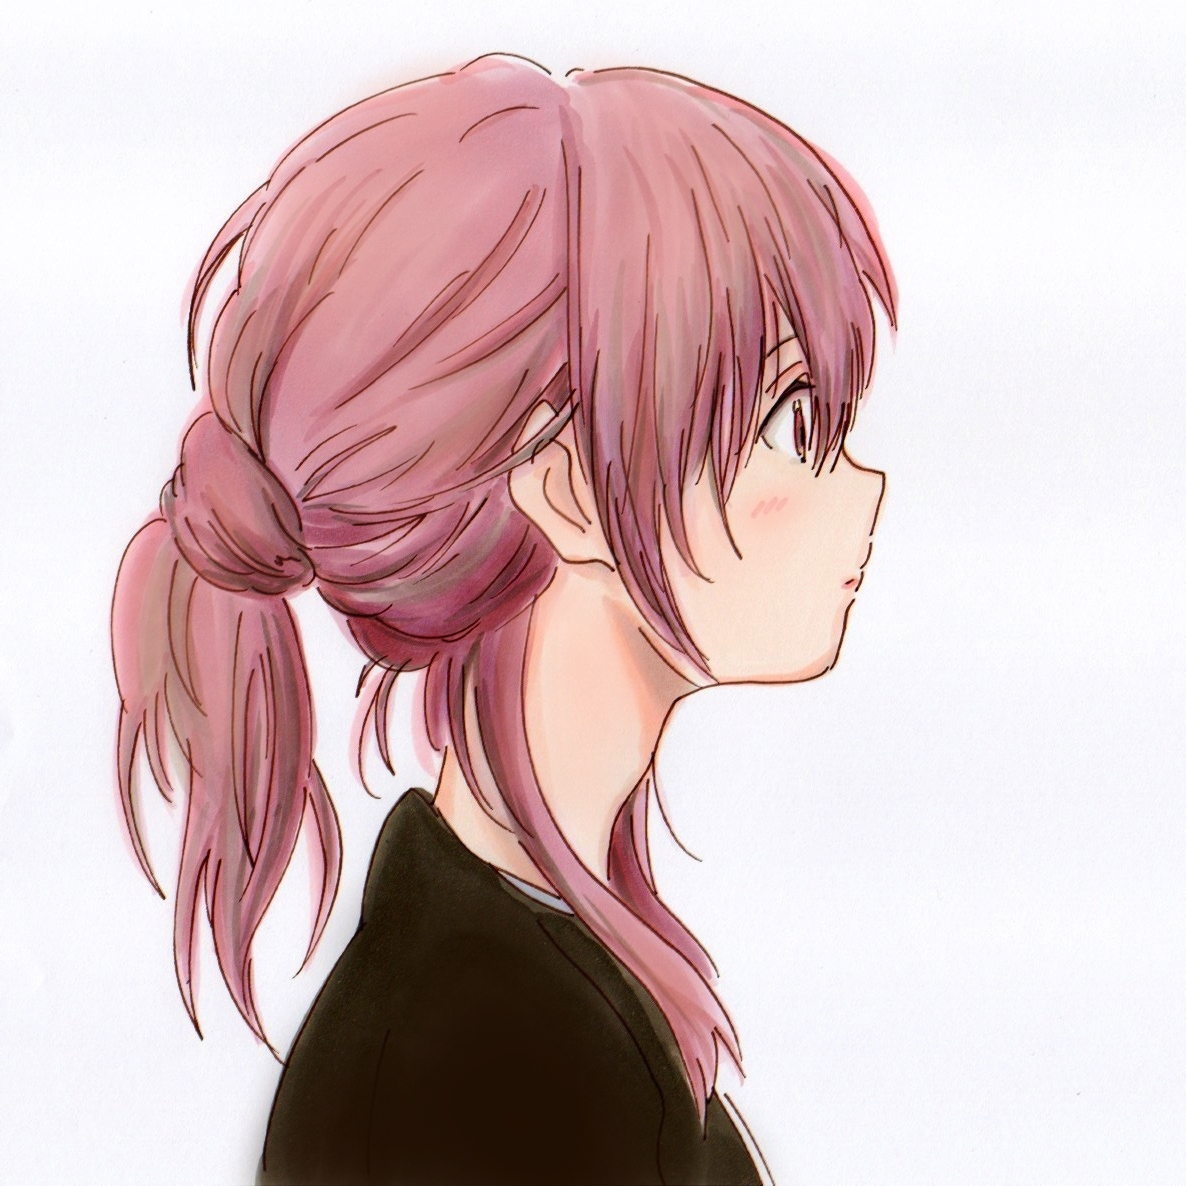 Nishimiya Shouko | Koe no Katachi Wiki | FANDOM powered by Wikia